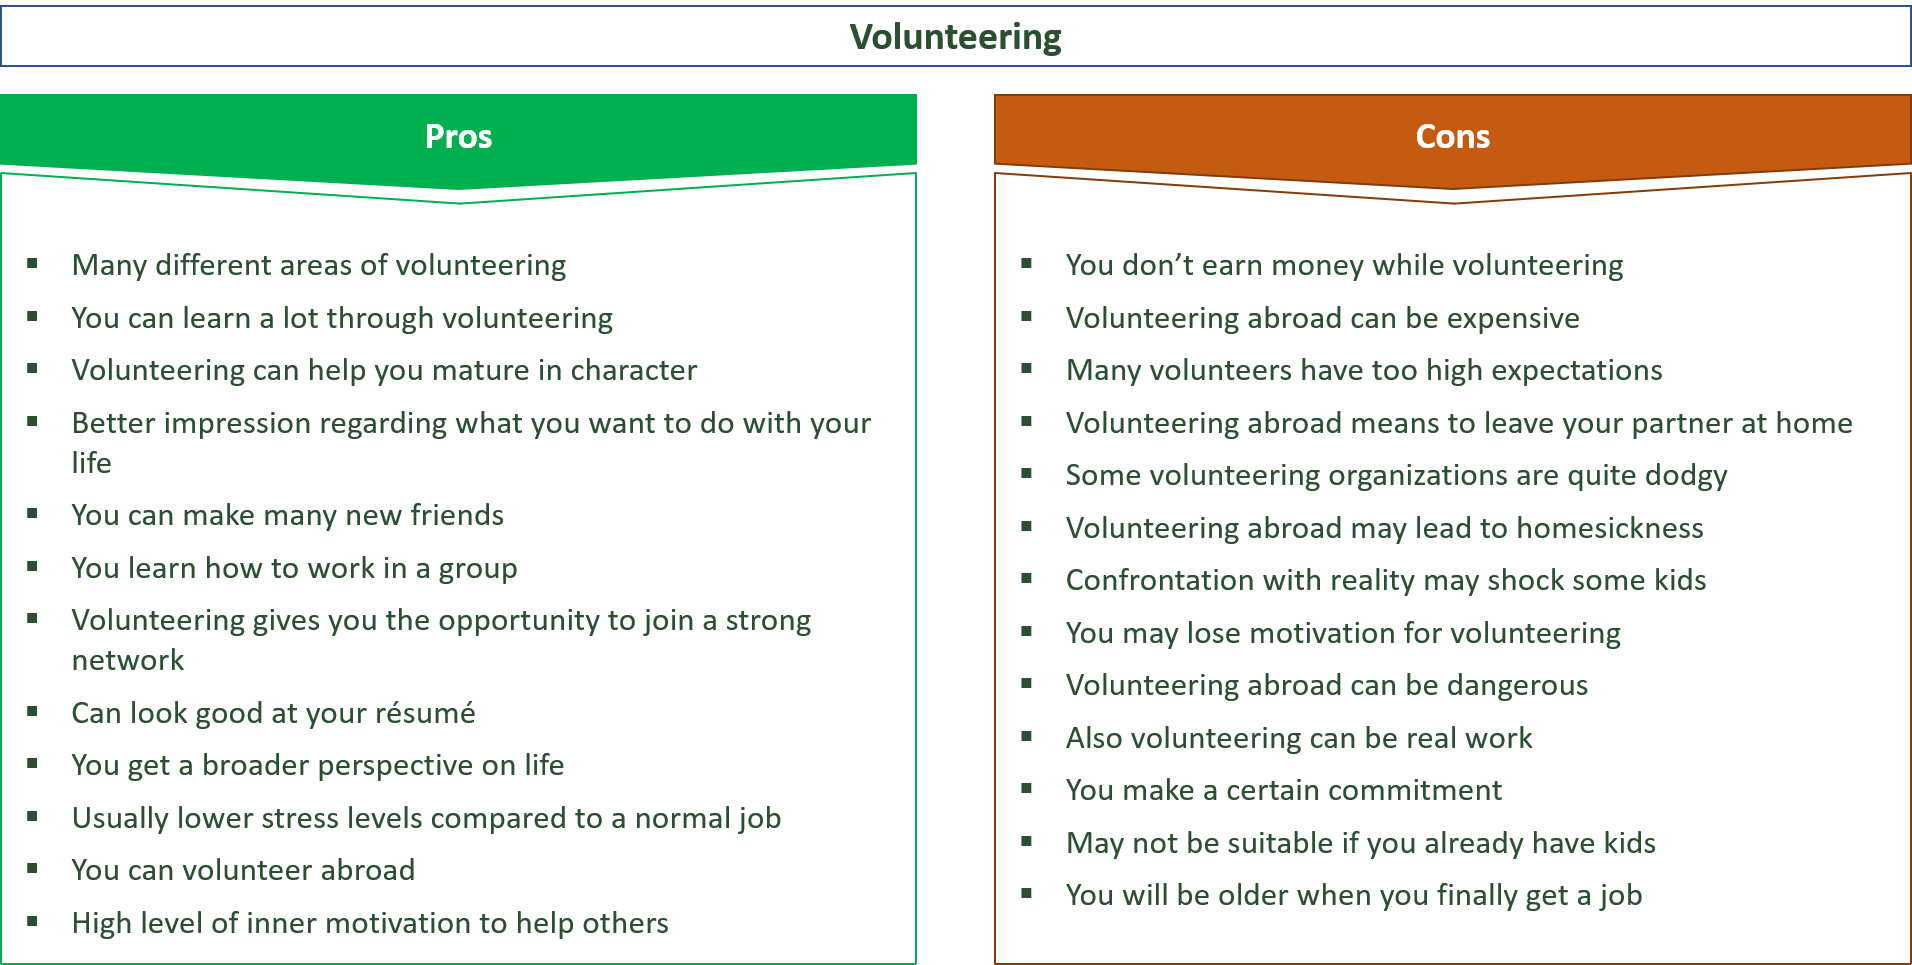 advantages and disadvantages of volunteering